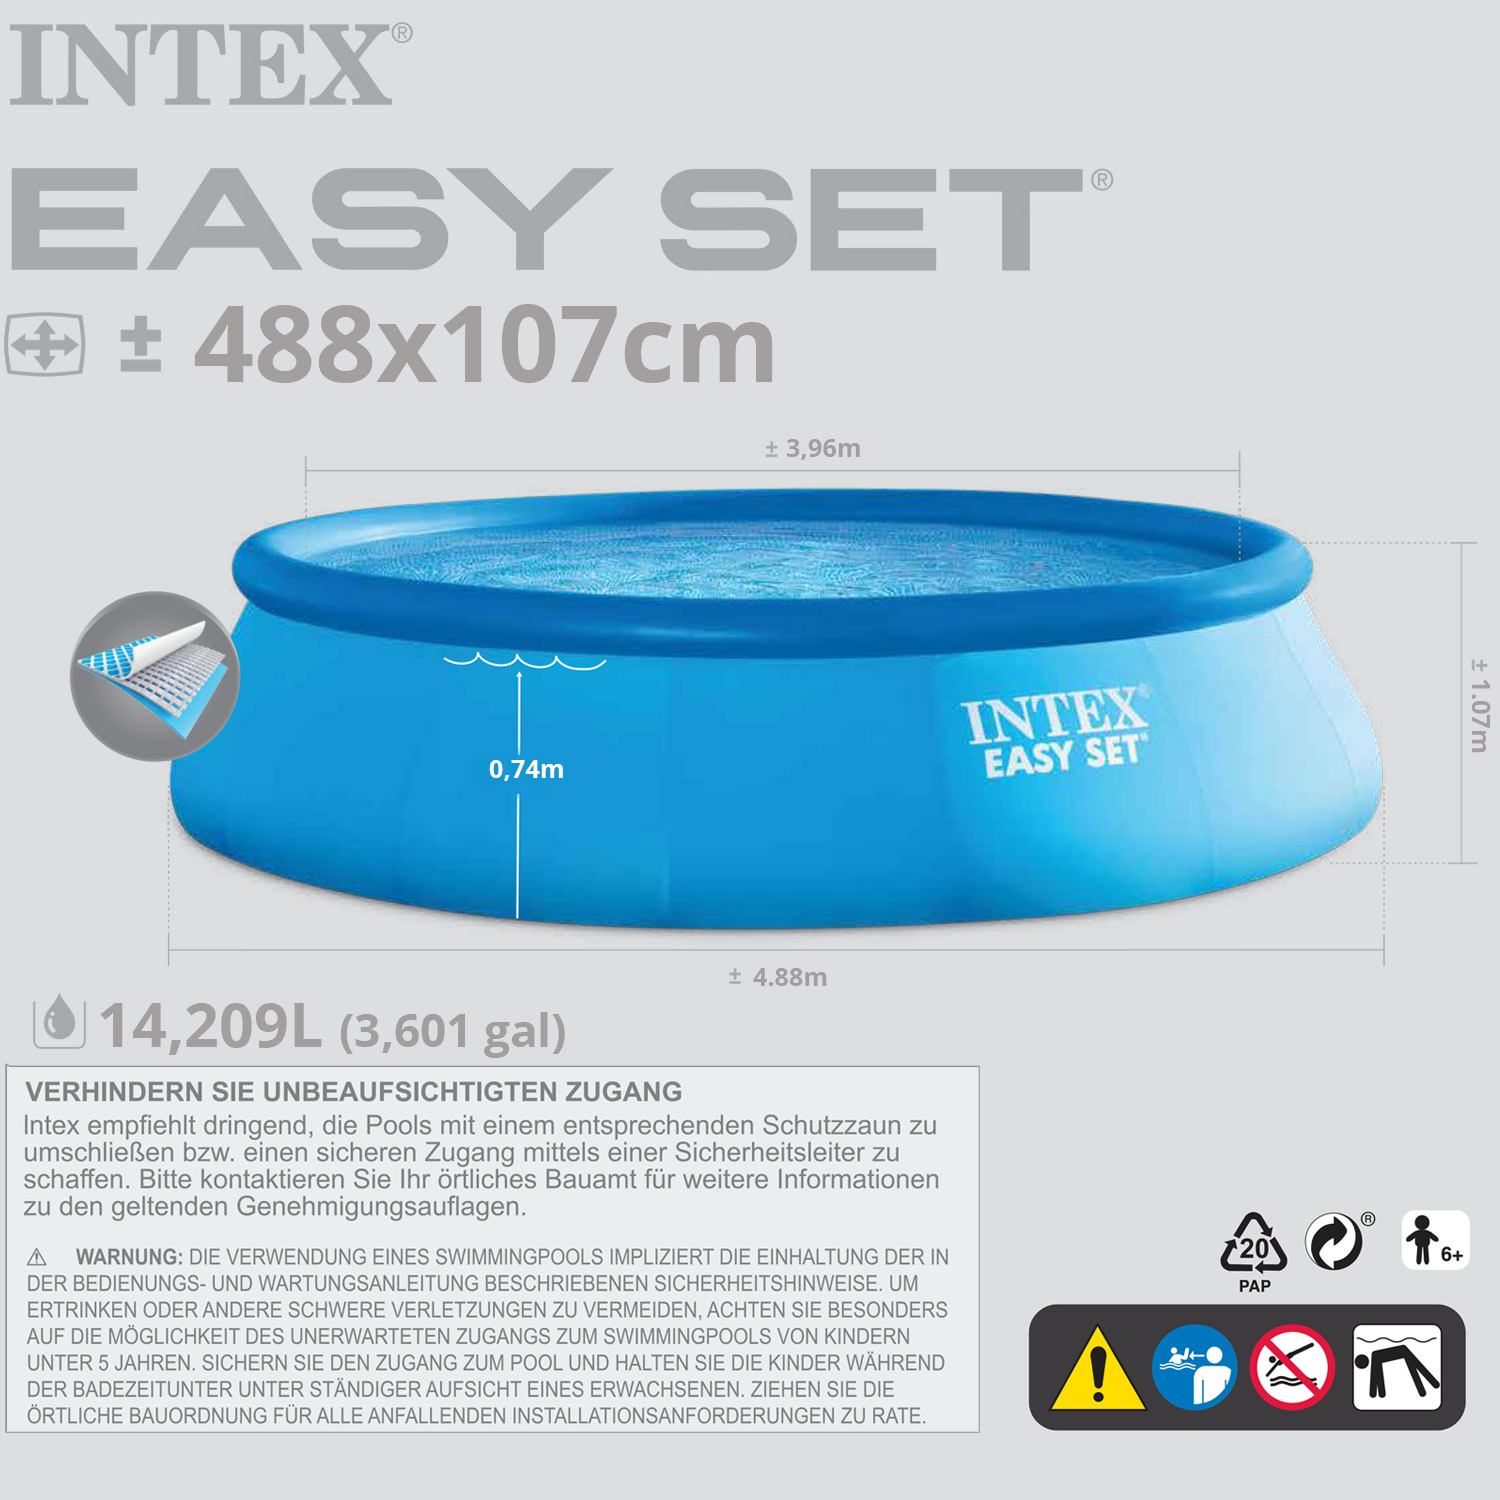 intex 488x107 cm komplettset swimming pool schwimmbad planschbecken sandfilter ebay. Black Bedroom Furniture Sets. Home Design Ideas